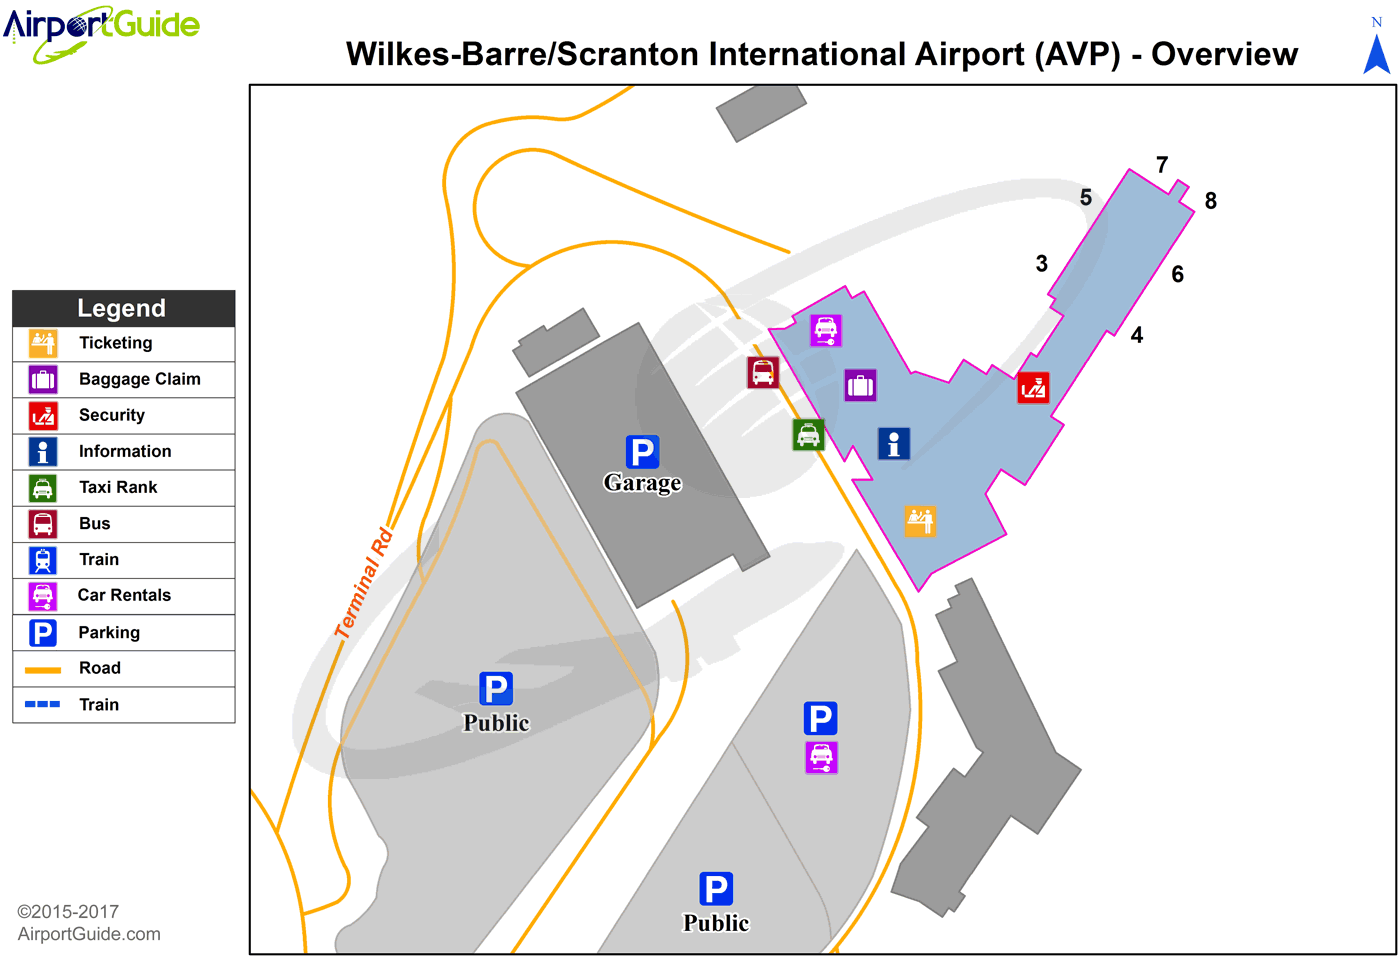 Wilkes-Barre/Scranton - Wilkes-Barre/Scranton International (AVP) Airport Terminal Map - Overview